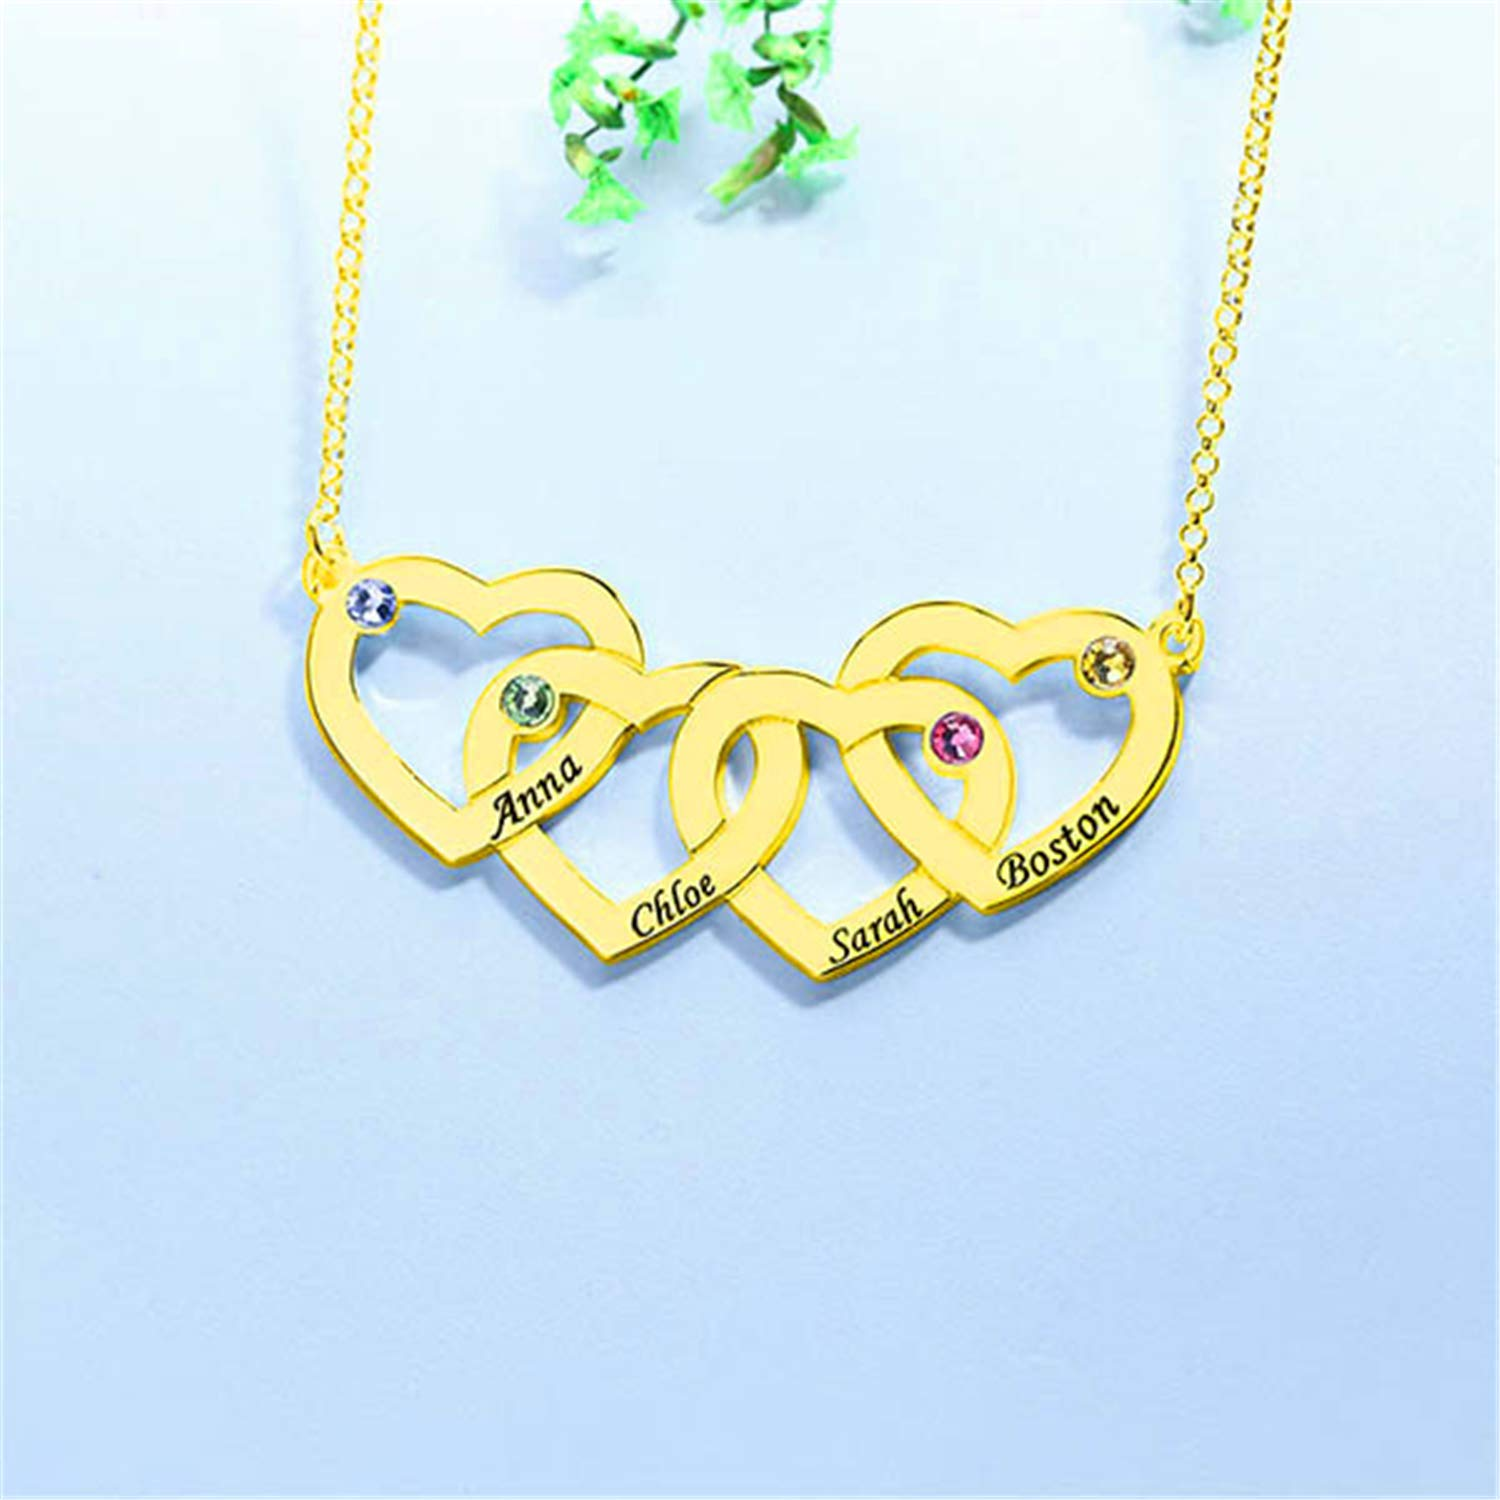 Getname Necklace Womens Personalized Intertwined Hearts with Birthstones Family Name Necklace Heart Pendent Necklace Jewelry for Mom